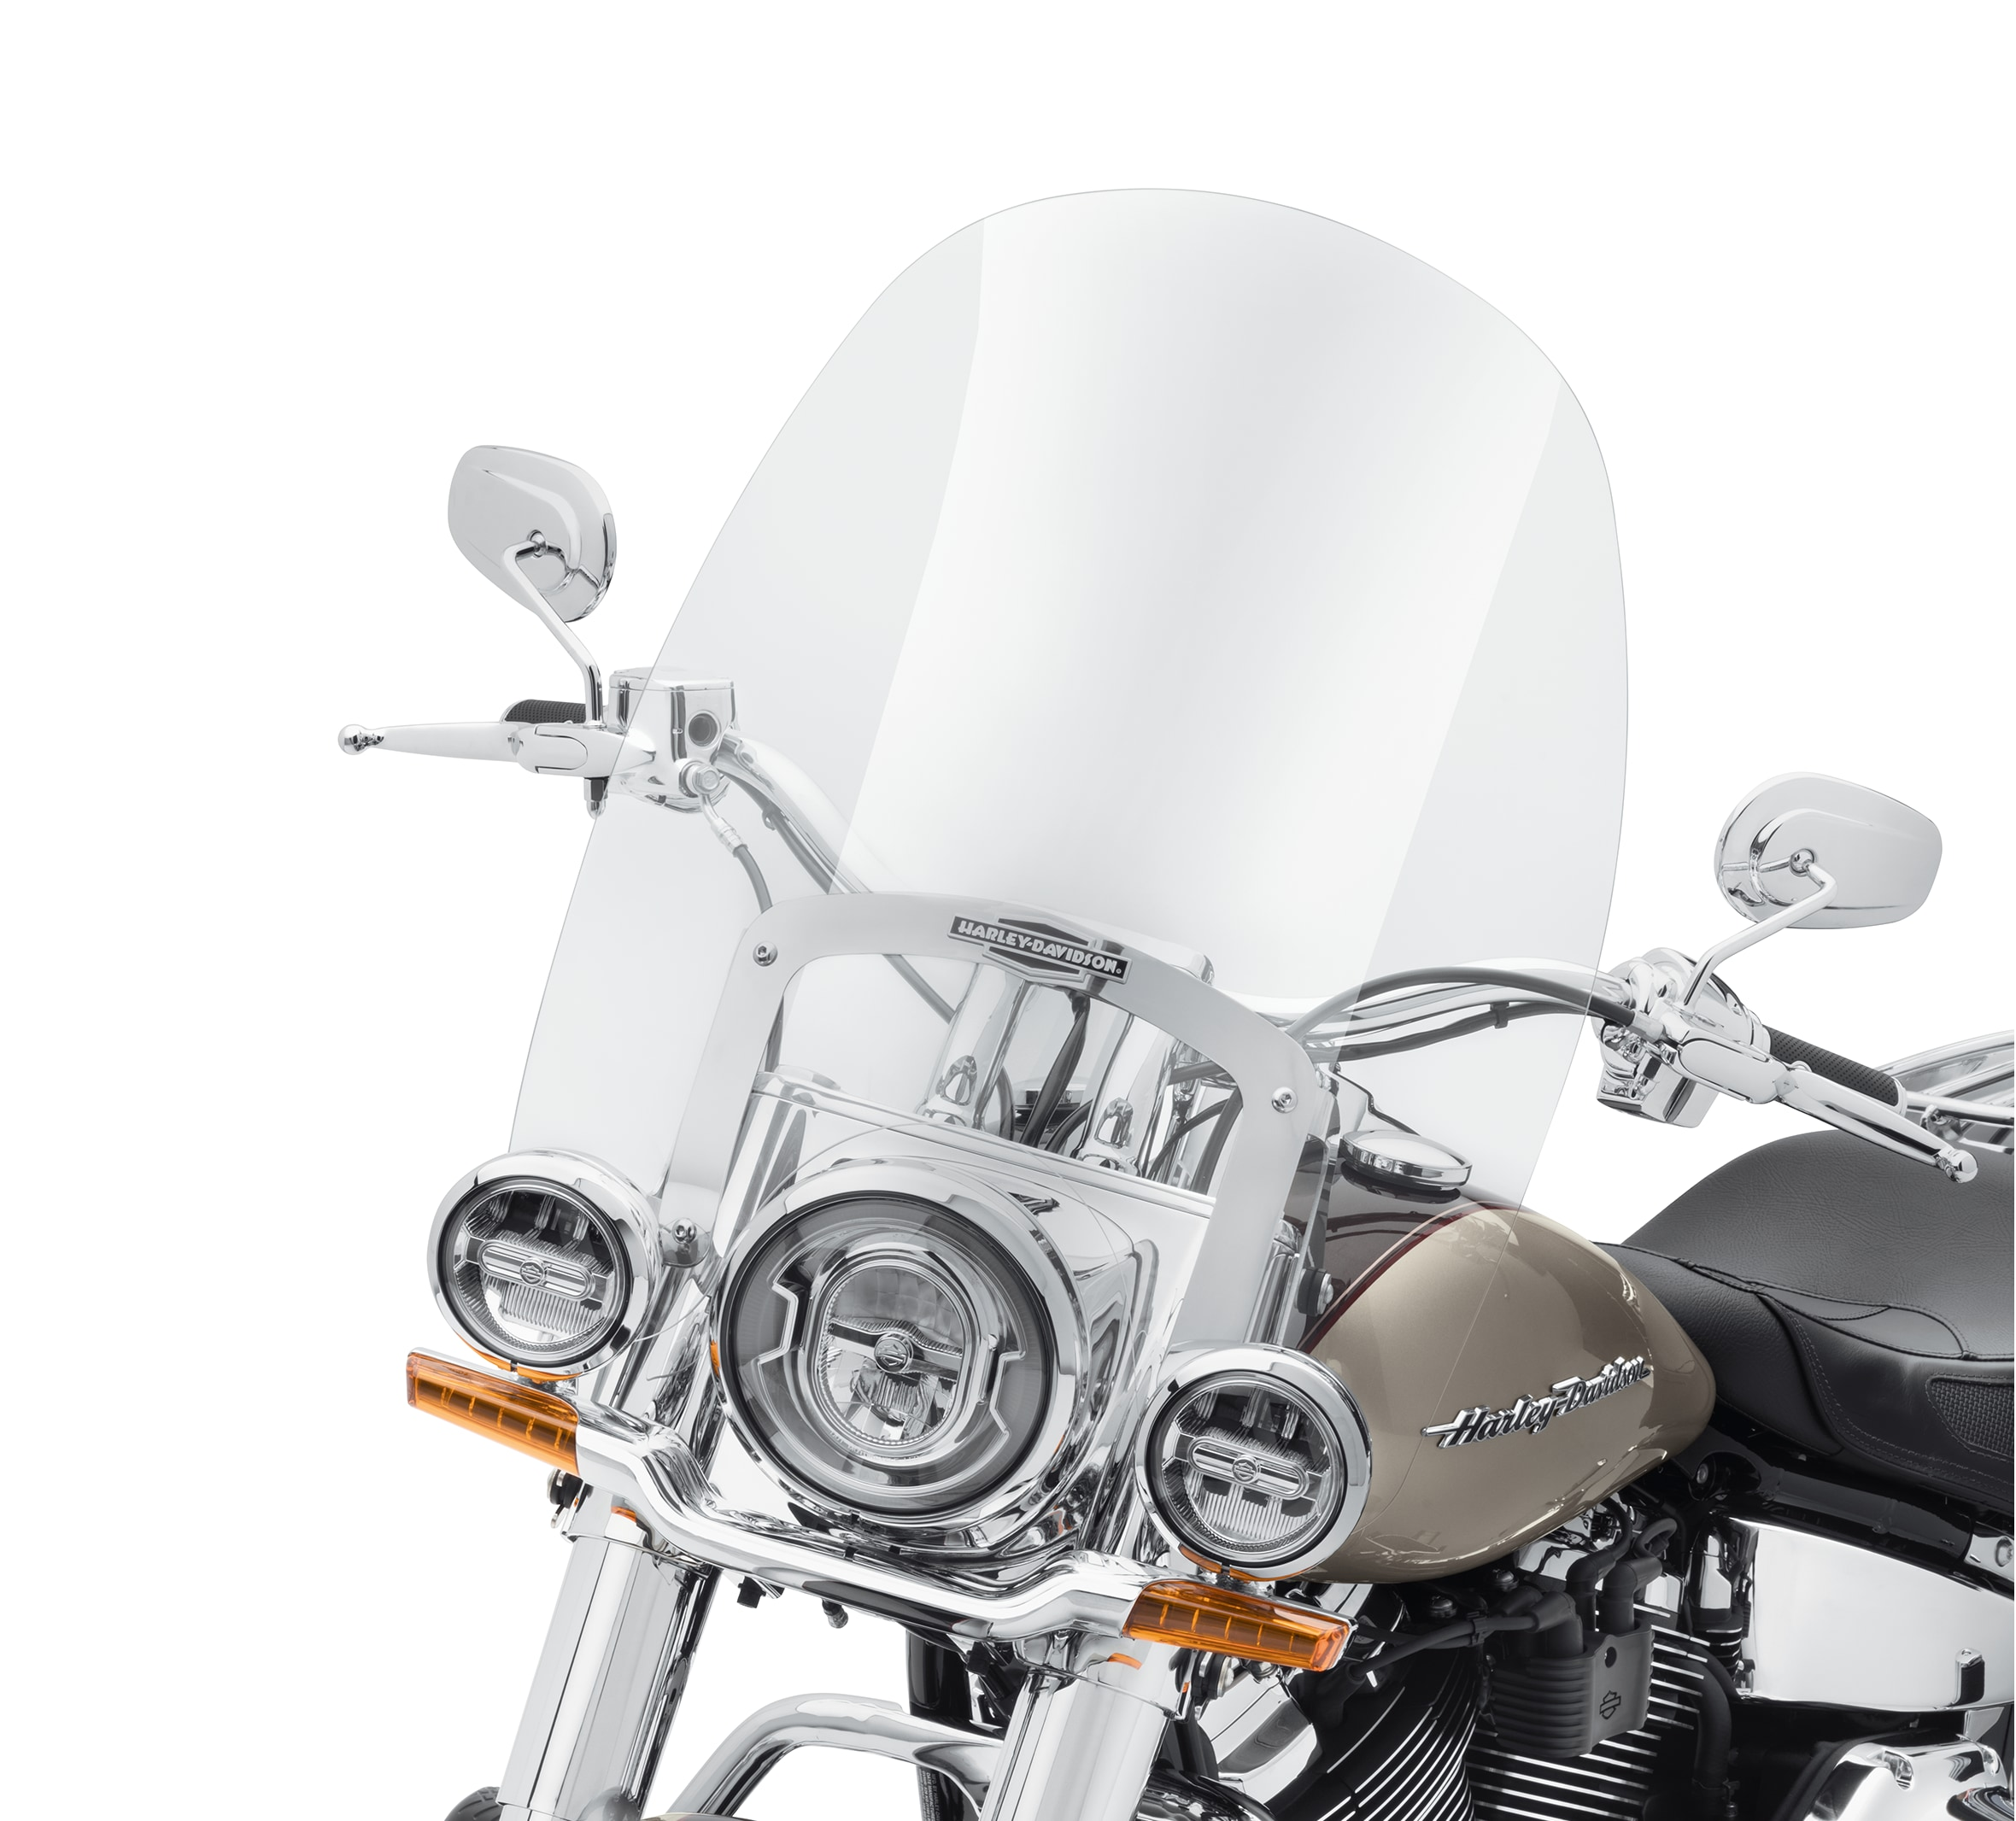 Windshield Kit Non-Detachable Clear,for Harley Davidson,by V-Twin